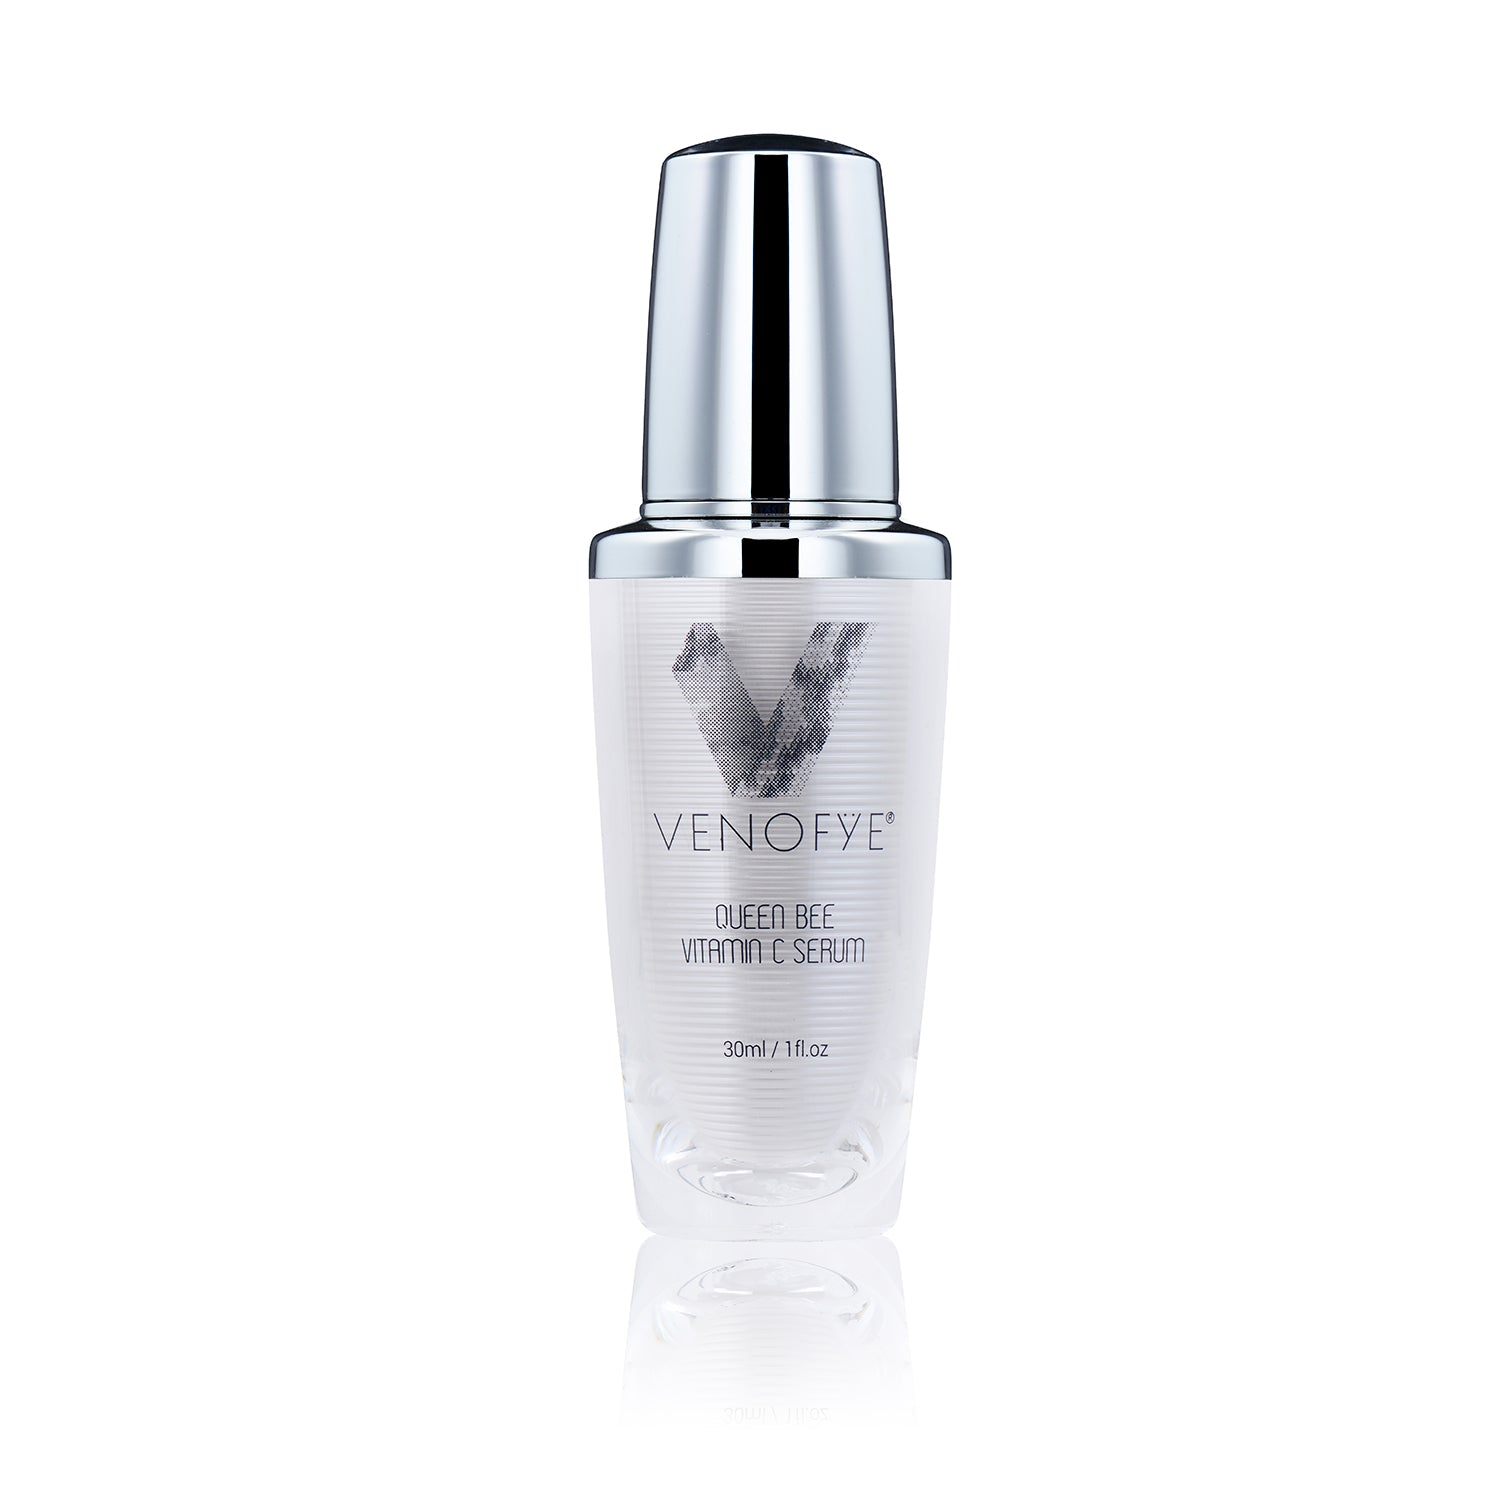 Venofye Queen Bee Vitamin C Serum